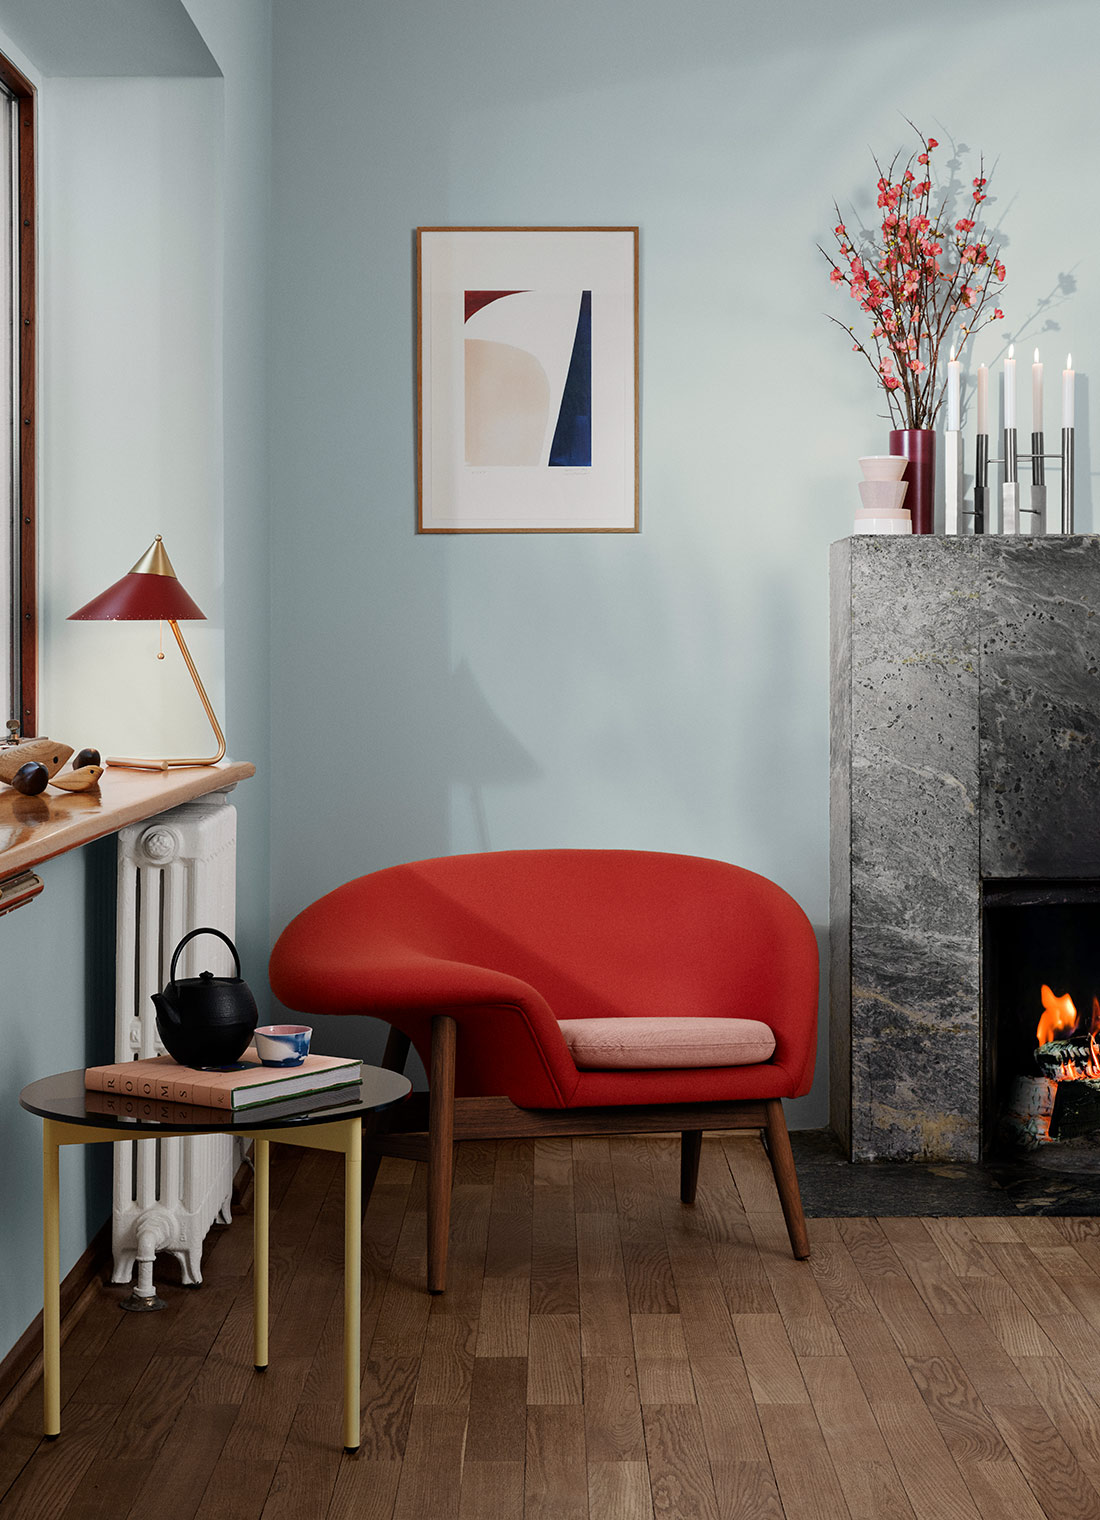 Red Fried Egg chair by the fireplace in a nicely decorated room.